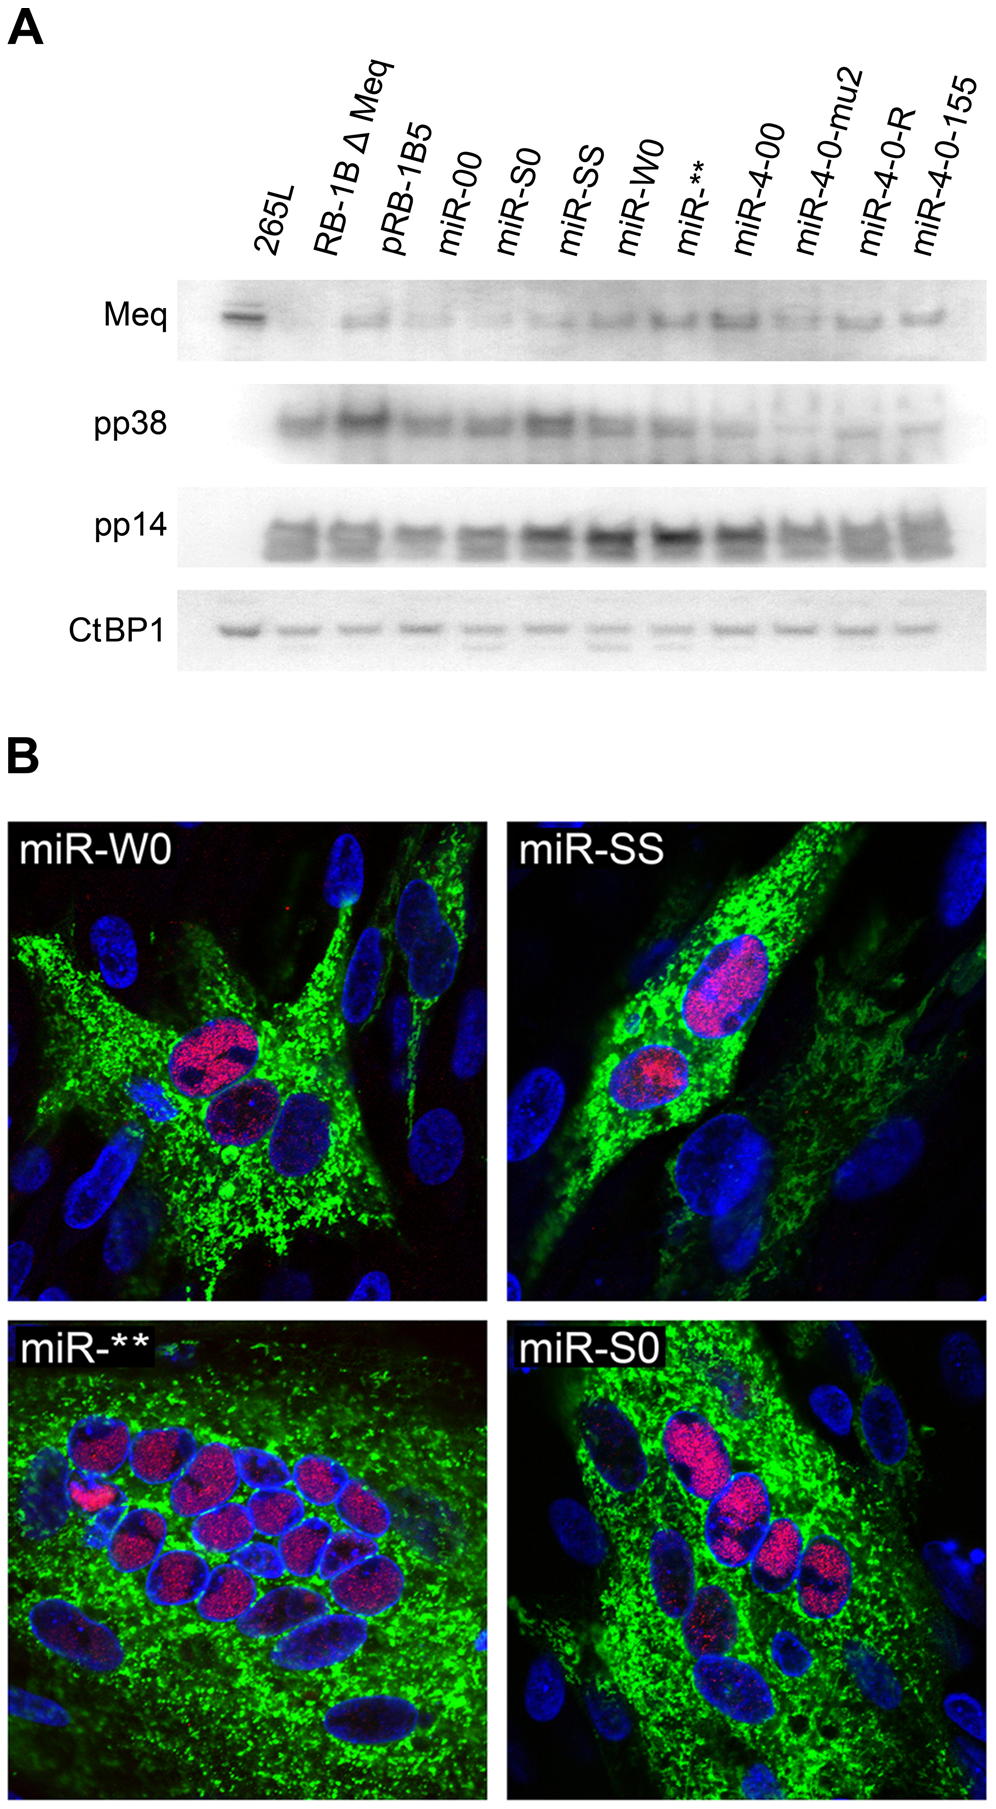 Expression of viral proteins by the mutant viruses.